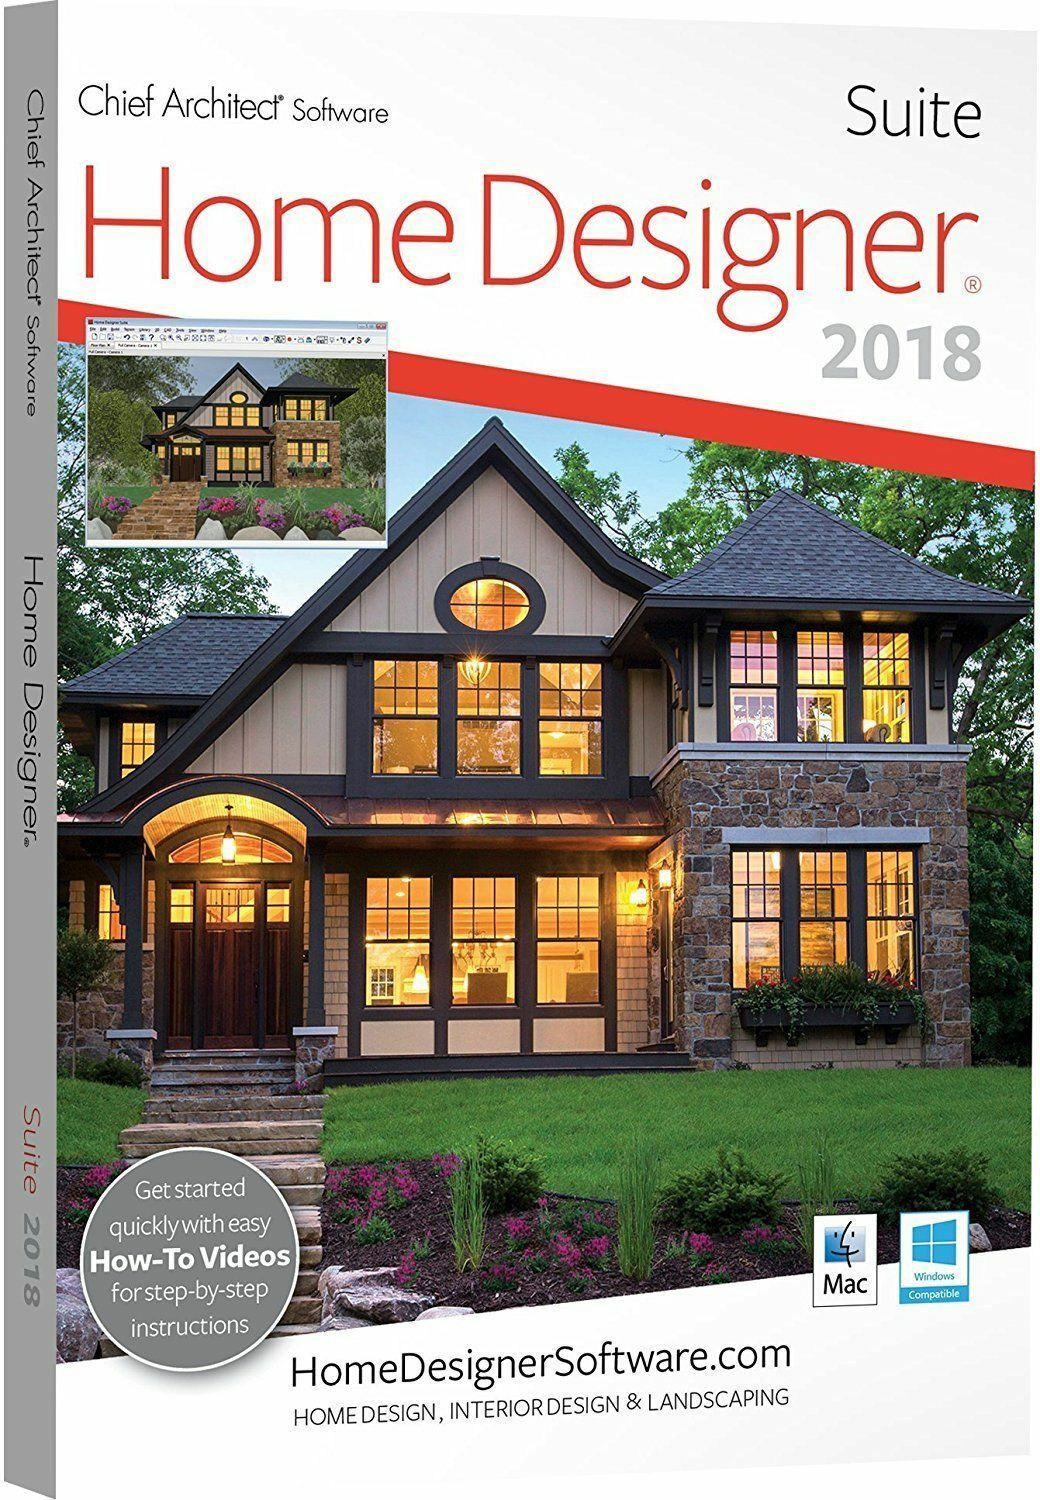 Genial Best Kitchen Gallery: Home Designer Suite Chief Architect Software 2018 Dvd  Ebay Of Home Designer